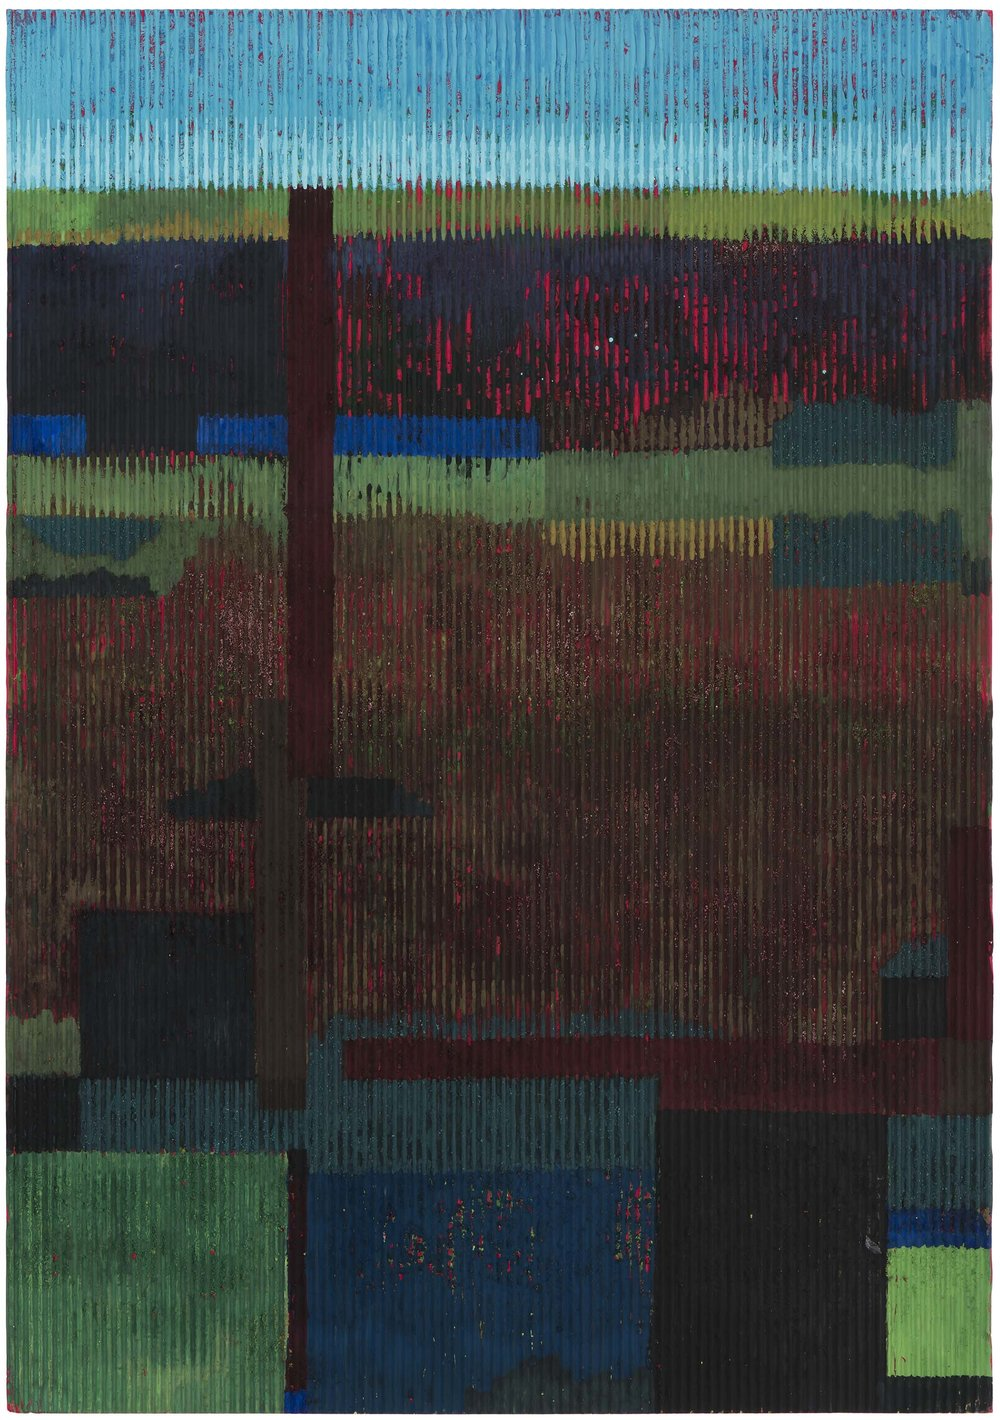 Midsummer night 1 (on red). 2015. gouache and acrylic on corrugated card. 50 x 35 cm. SOLD